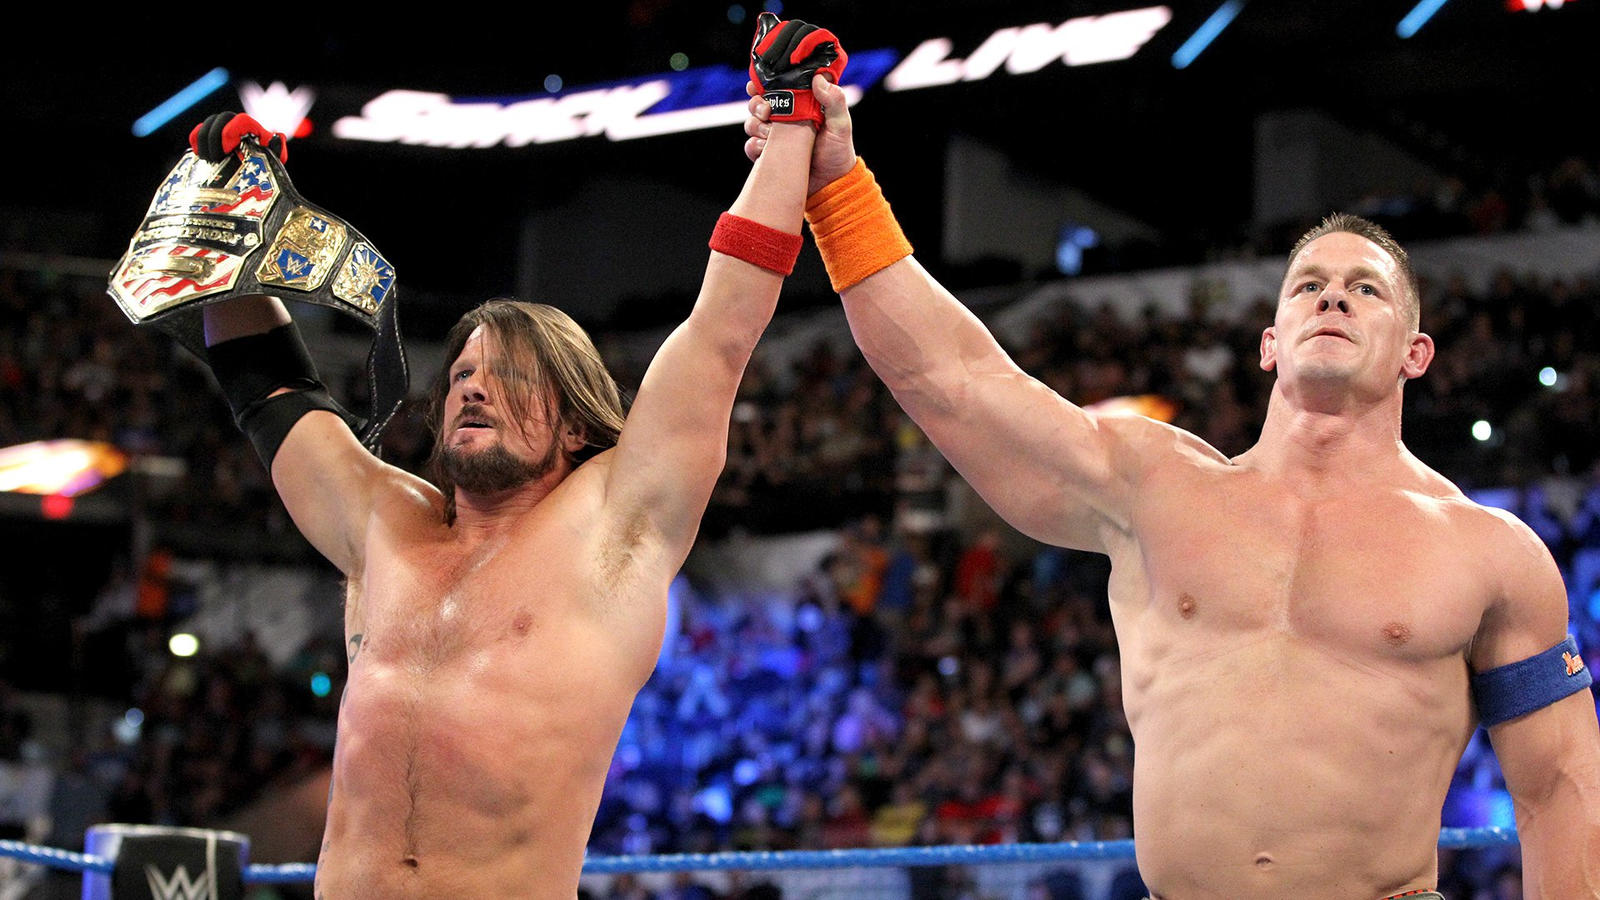 DOWNLOAD WWE SmackDown LIVE: July 11, 2017; Cena & Styles Join Forces to Repel Owens & Rusev in Main Event Showdown